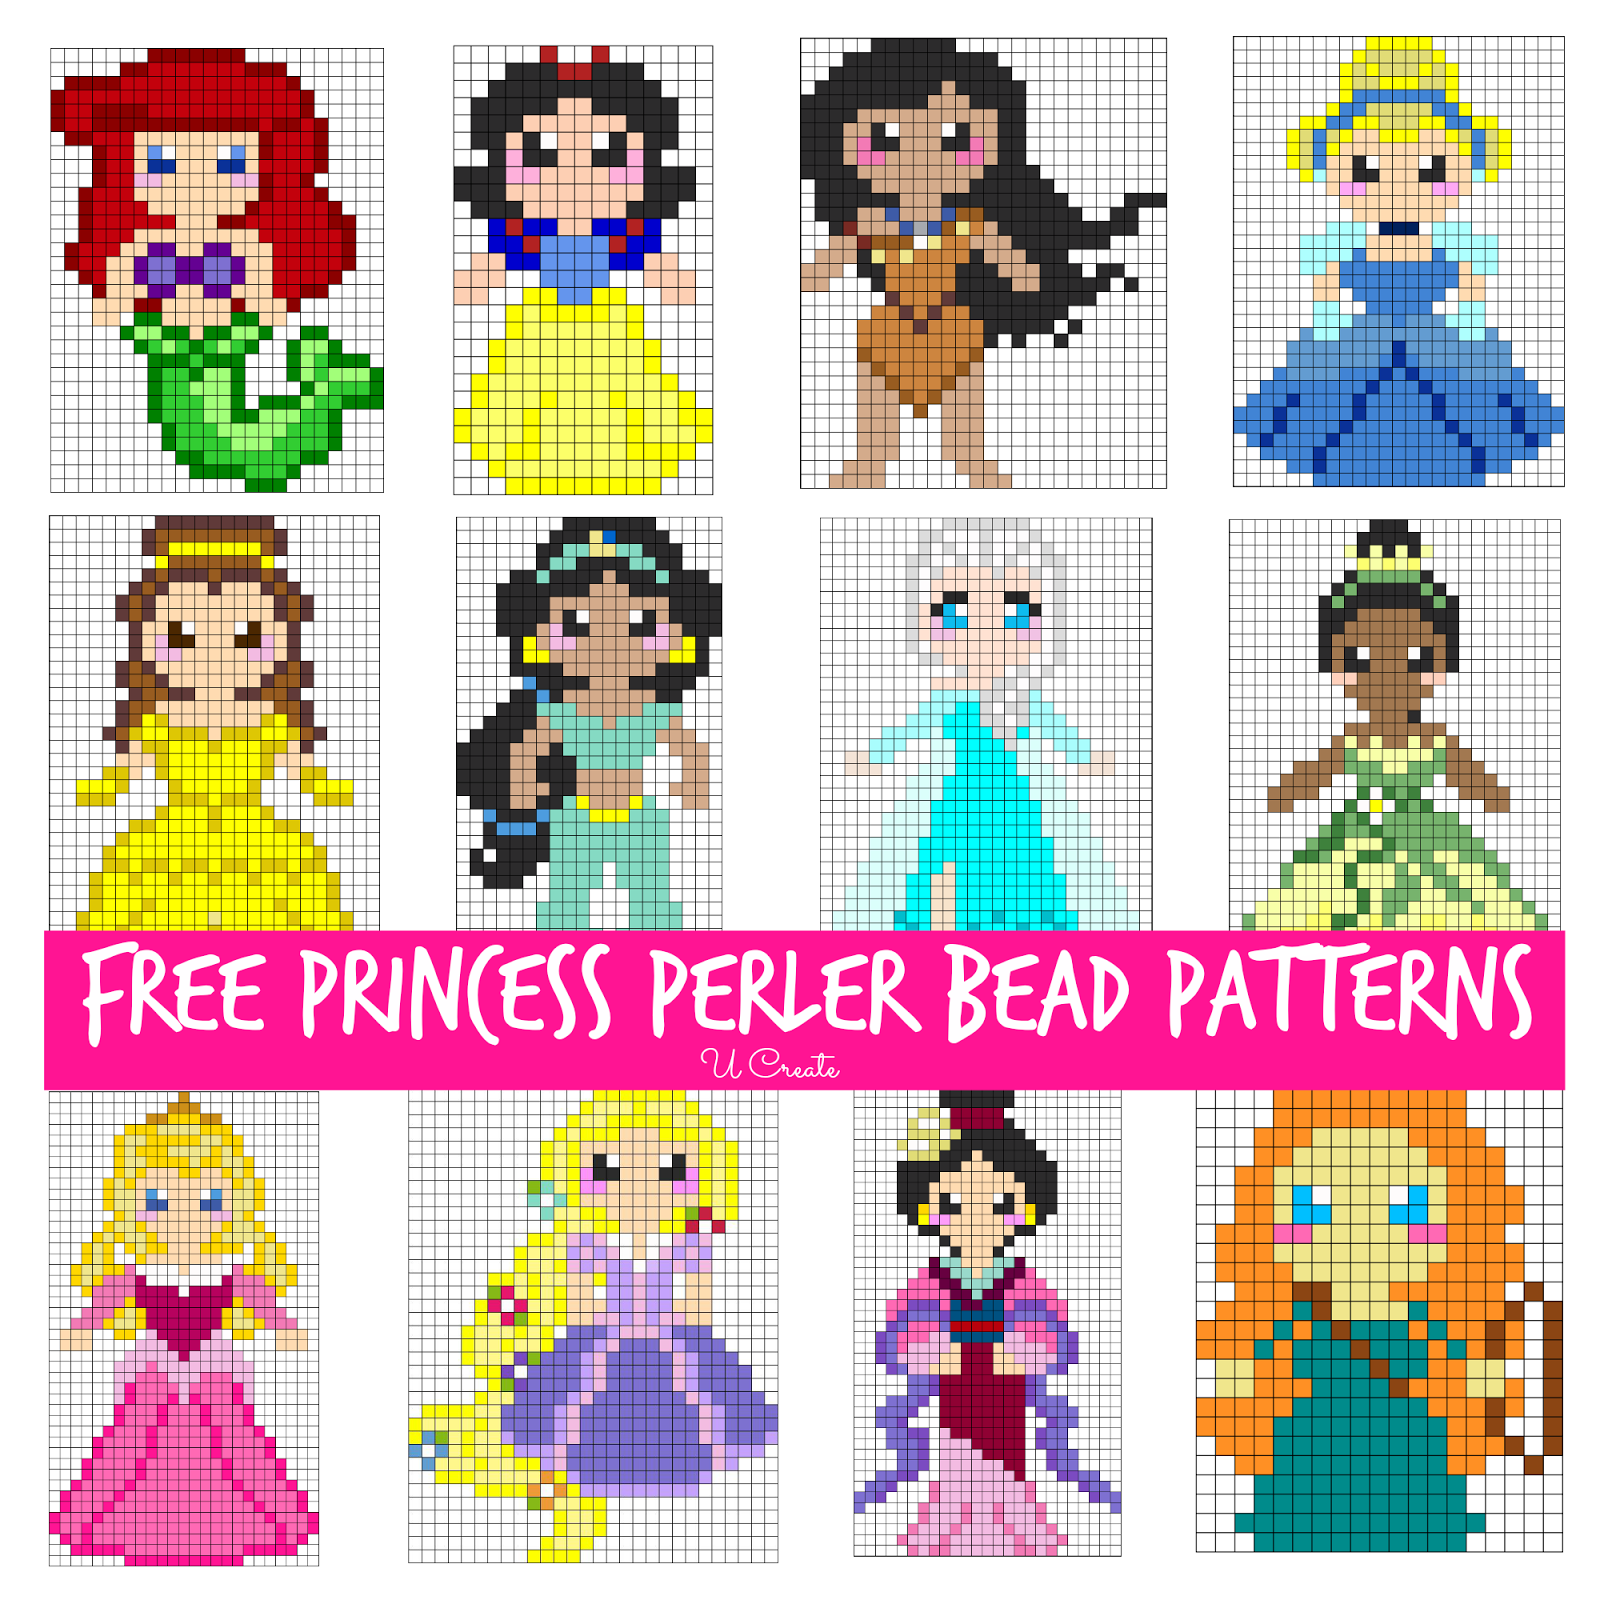 Free Perler Bead Patterns for Kids | kleine Prinzessin, Besticken ...